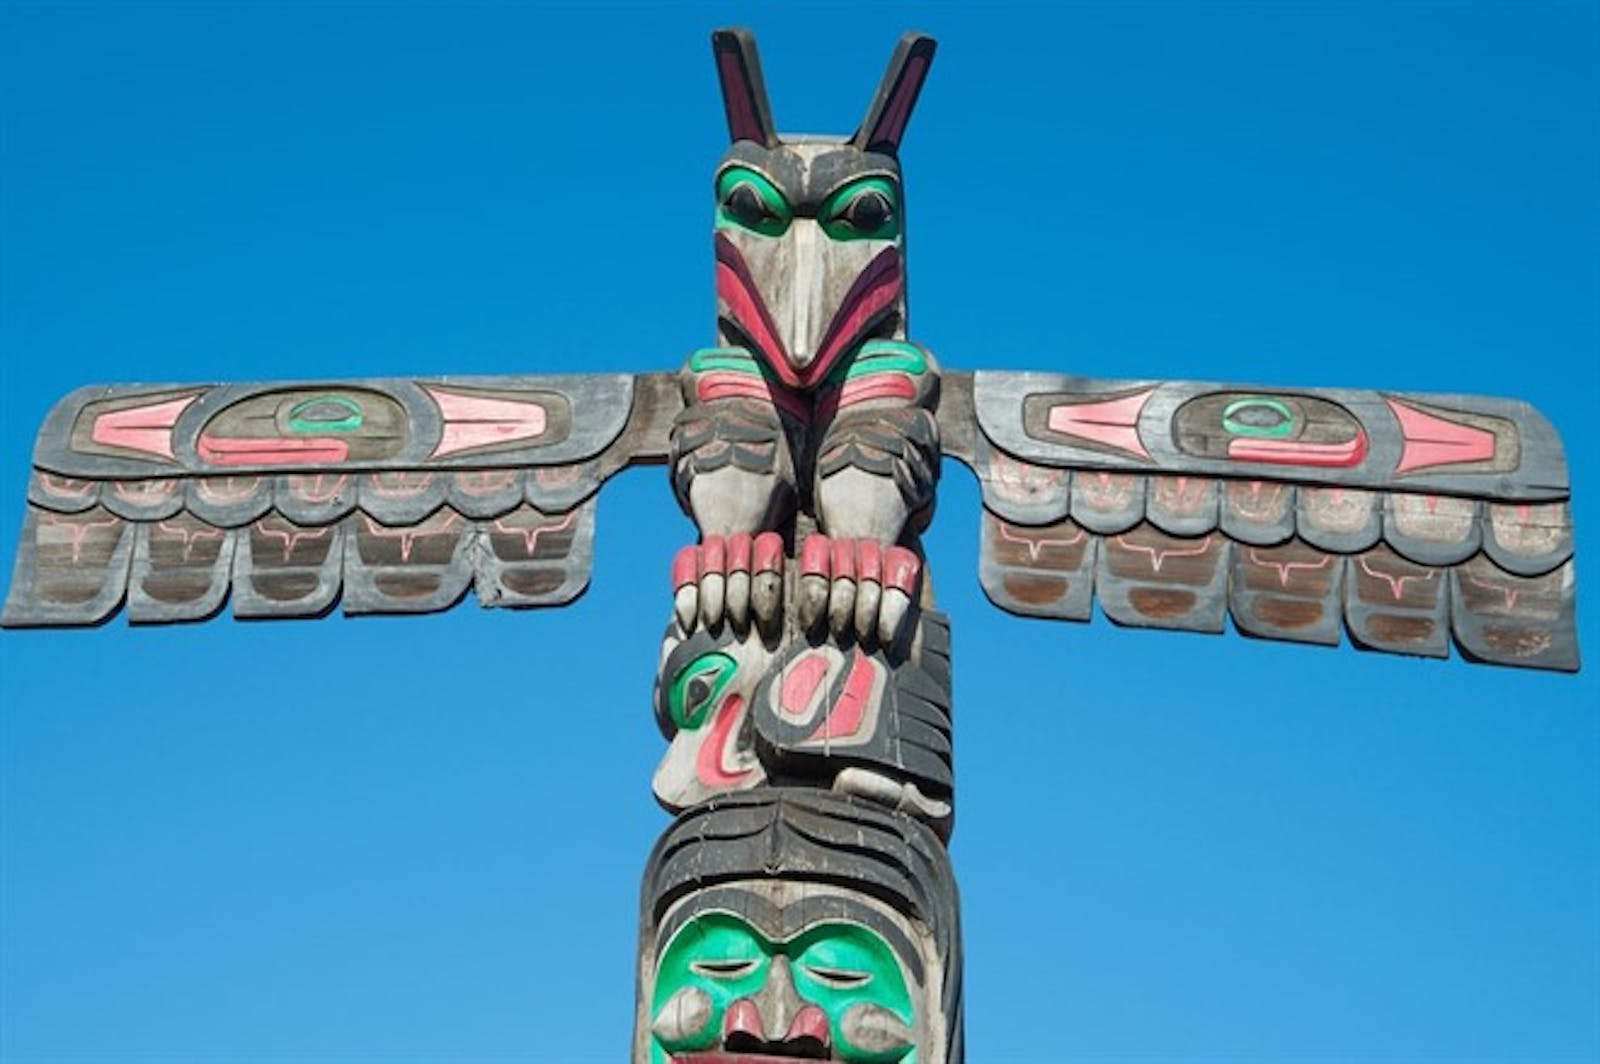 Duncan, City of Totems